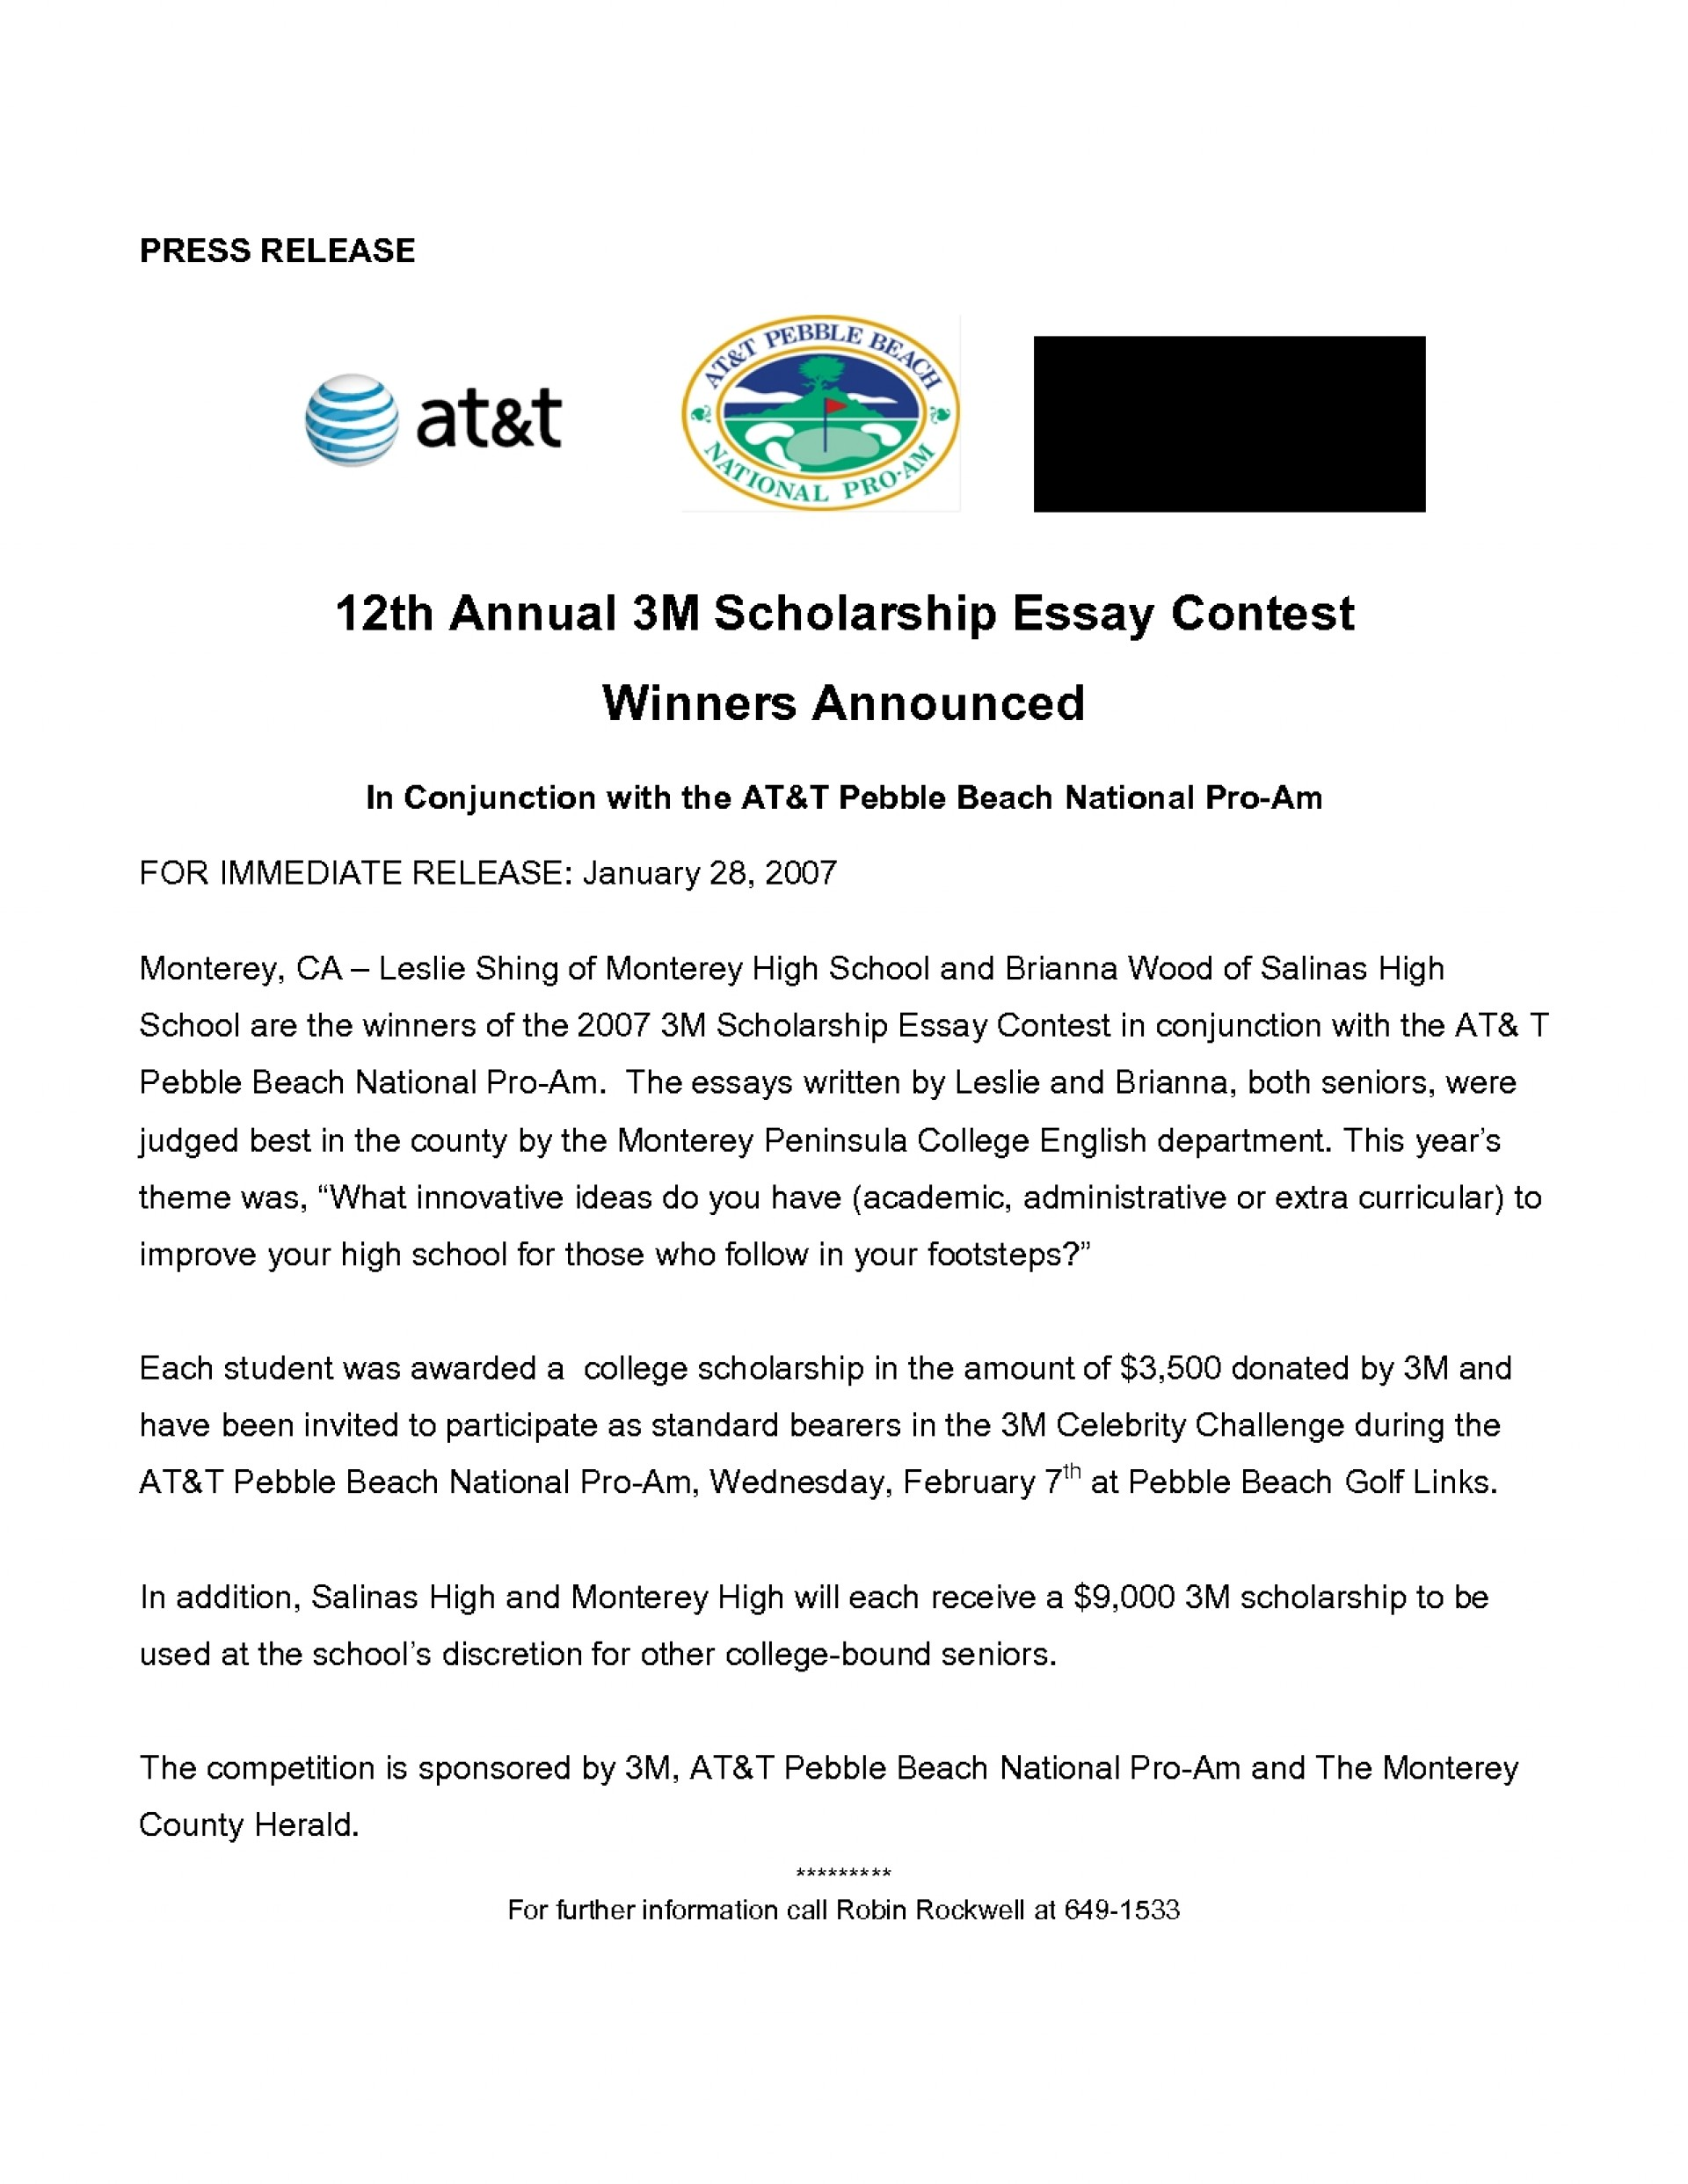 008 Scholarship Essay Contest High School Student Resume Template No Experience Luxury Assignment College Contests Application Help Wi Fountainhead Students Galorath Zzl Astounding For 2019 Middle 1920